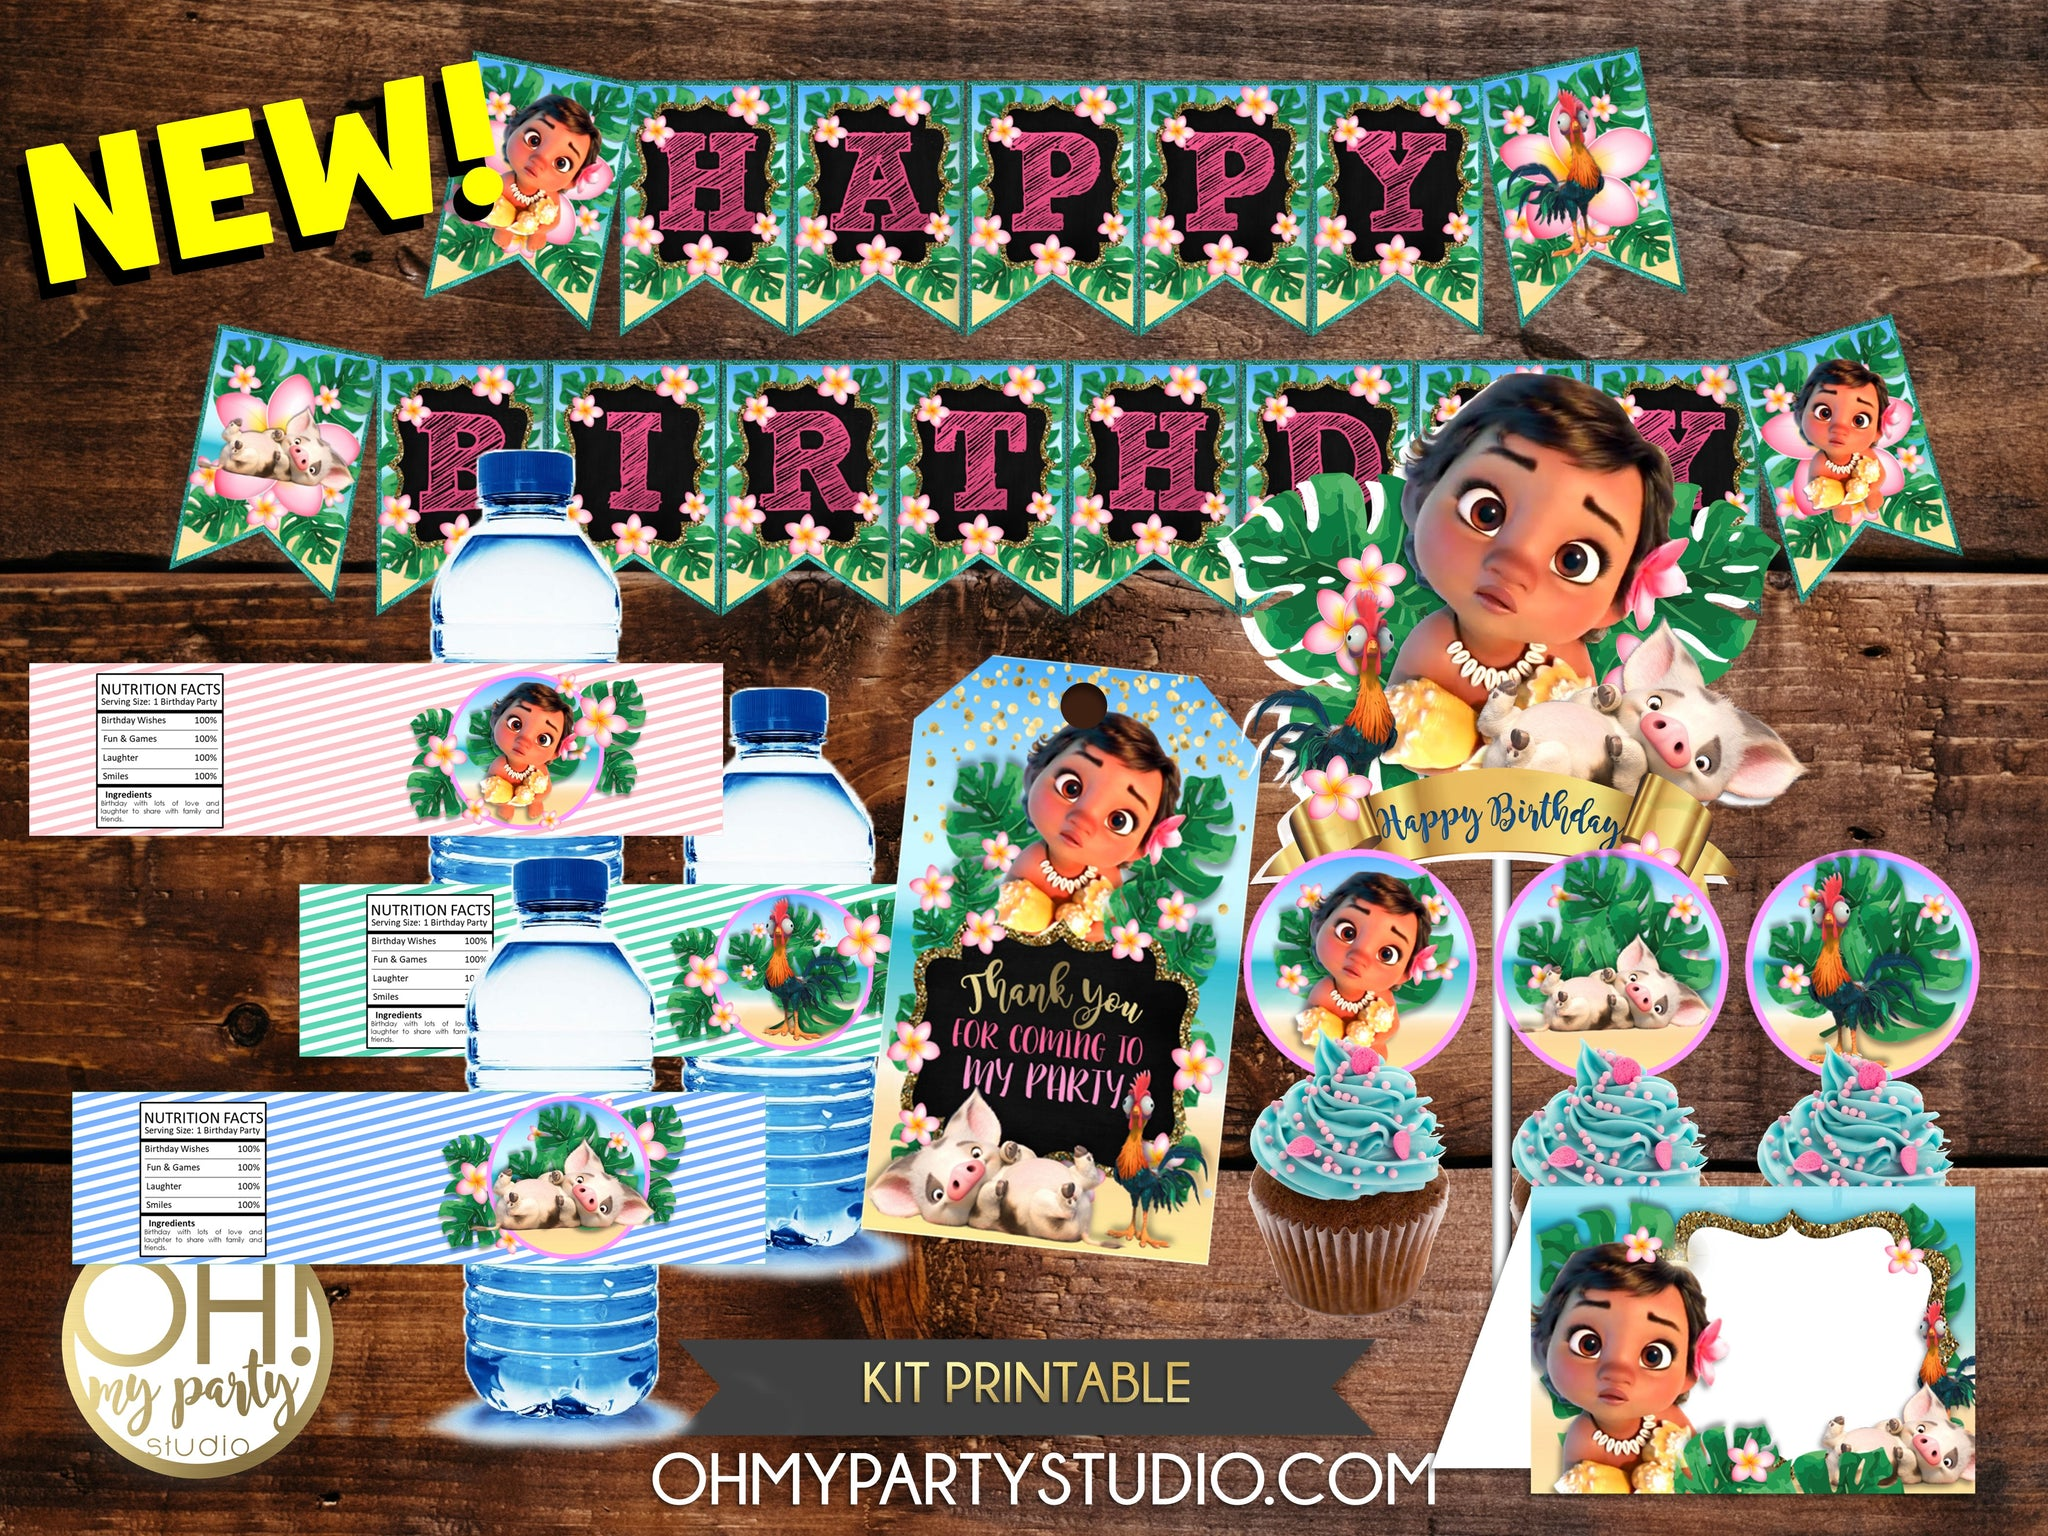 MOANA BABY KIT PRINTABLE, MOANA BABY PACKAGE PRINTABLE, MOANA BABY BIRTHDAY PARTY, MOANA BABY DECORATIONS, MOANA BABY INSTANT DOWNLOAD DECORATIONS FOR PARTY,MOANA BABY BANNER, MOANA POOL PARTY, MOANA THANK YOU TAGS, MOANA DECORATIONS, MOANA PRINTABLE, MOANA INVITATION, MOANA POOL PARTY INVITATION